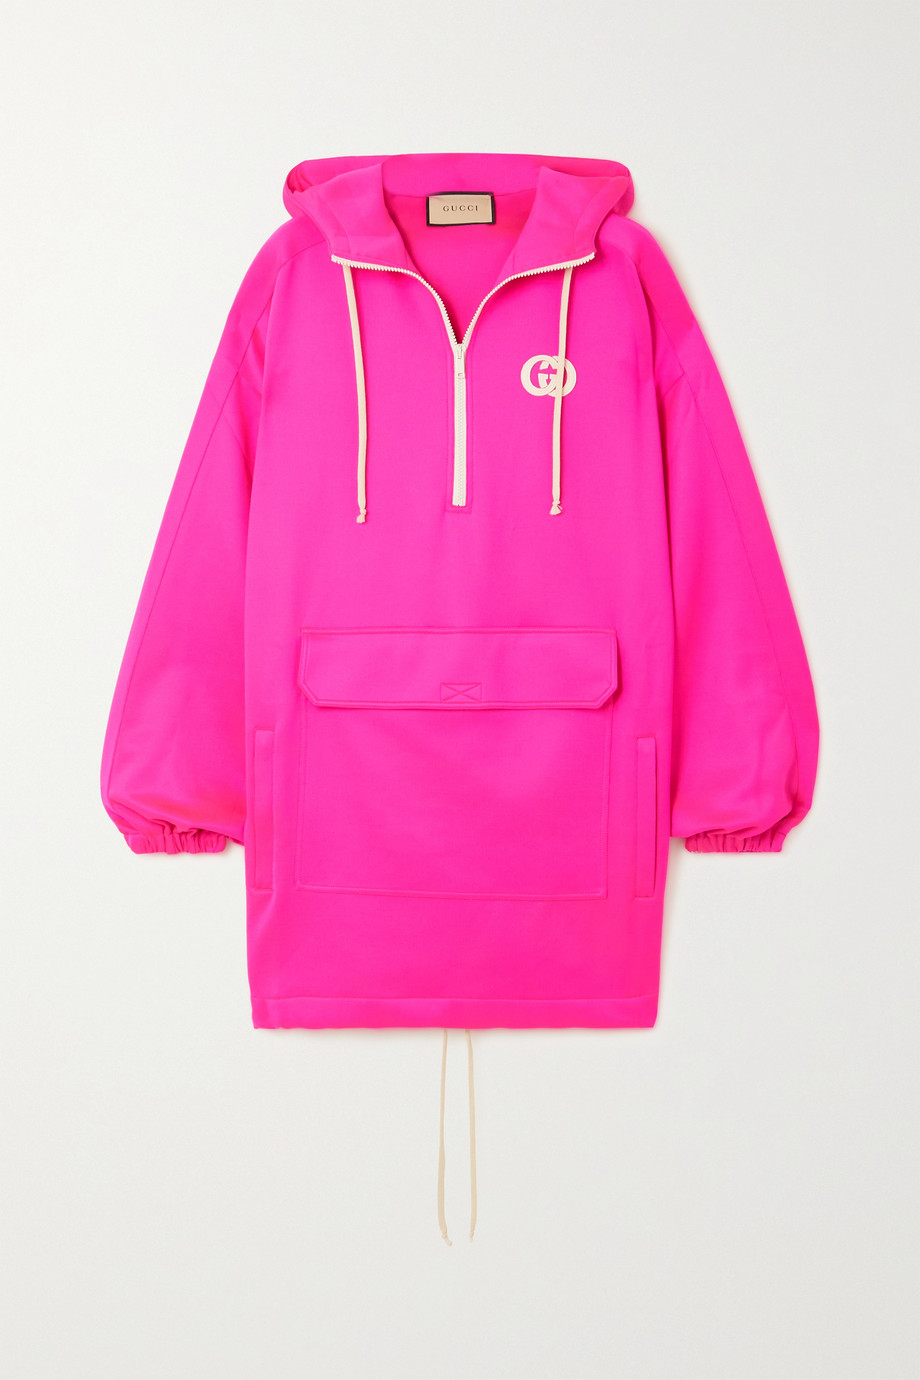 Gucci Oversized-Hoodie aus Stretch-Scuba mit Applikation